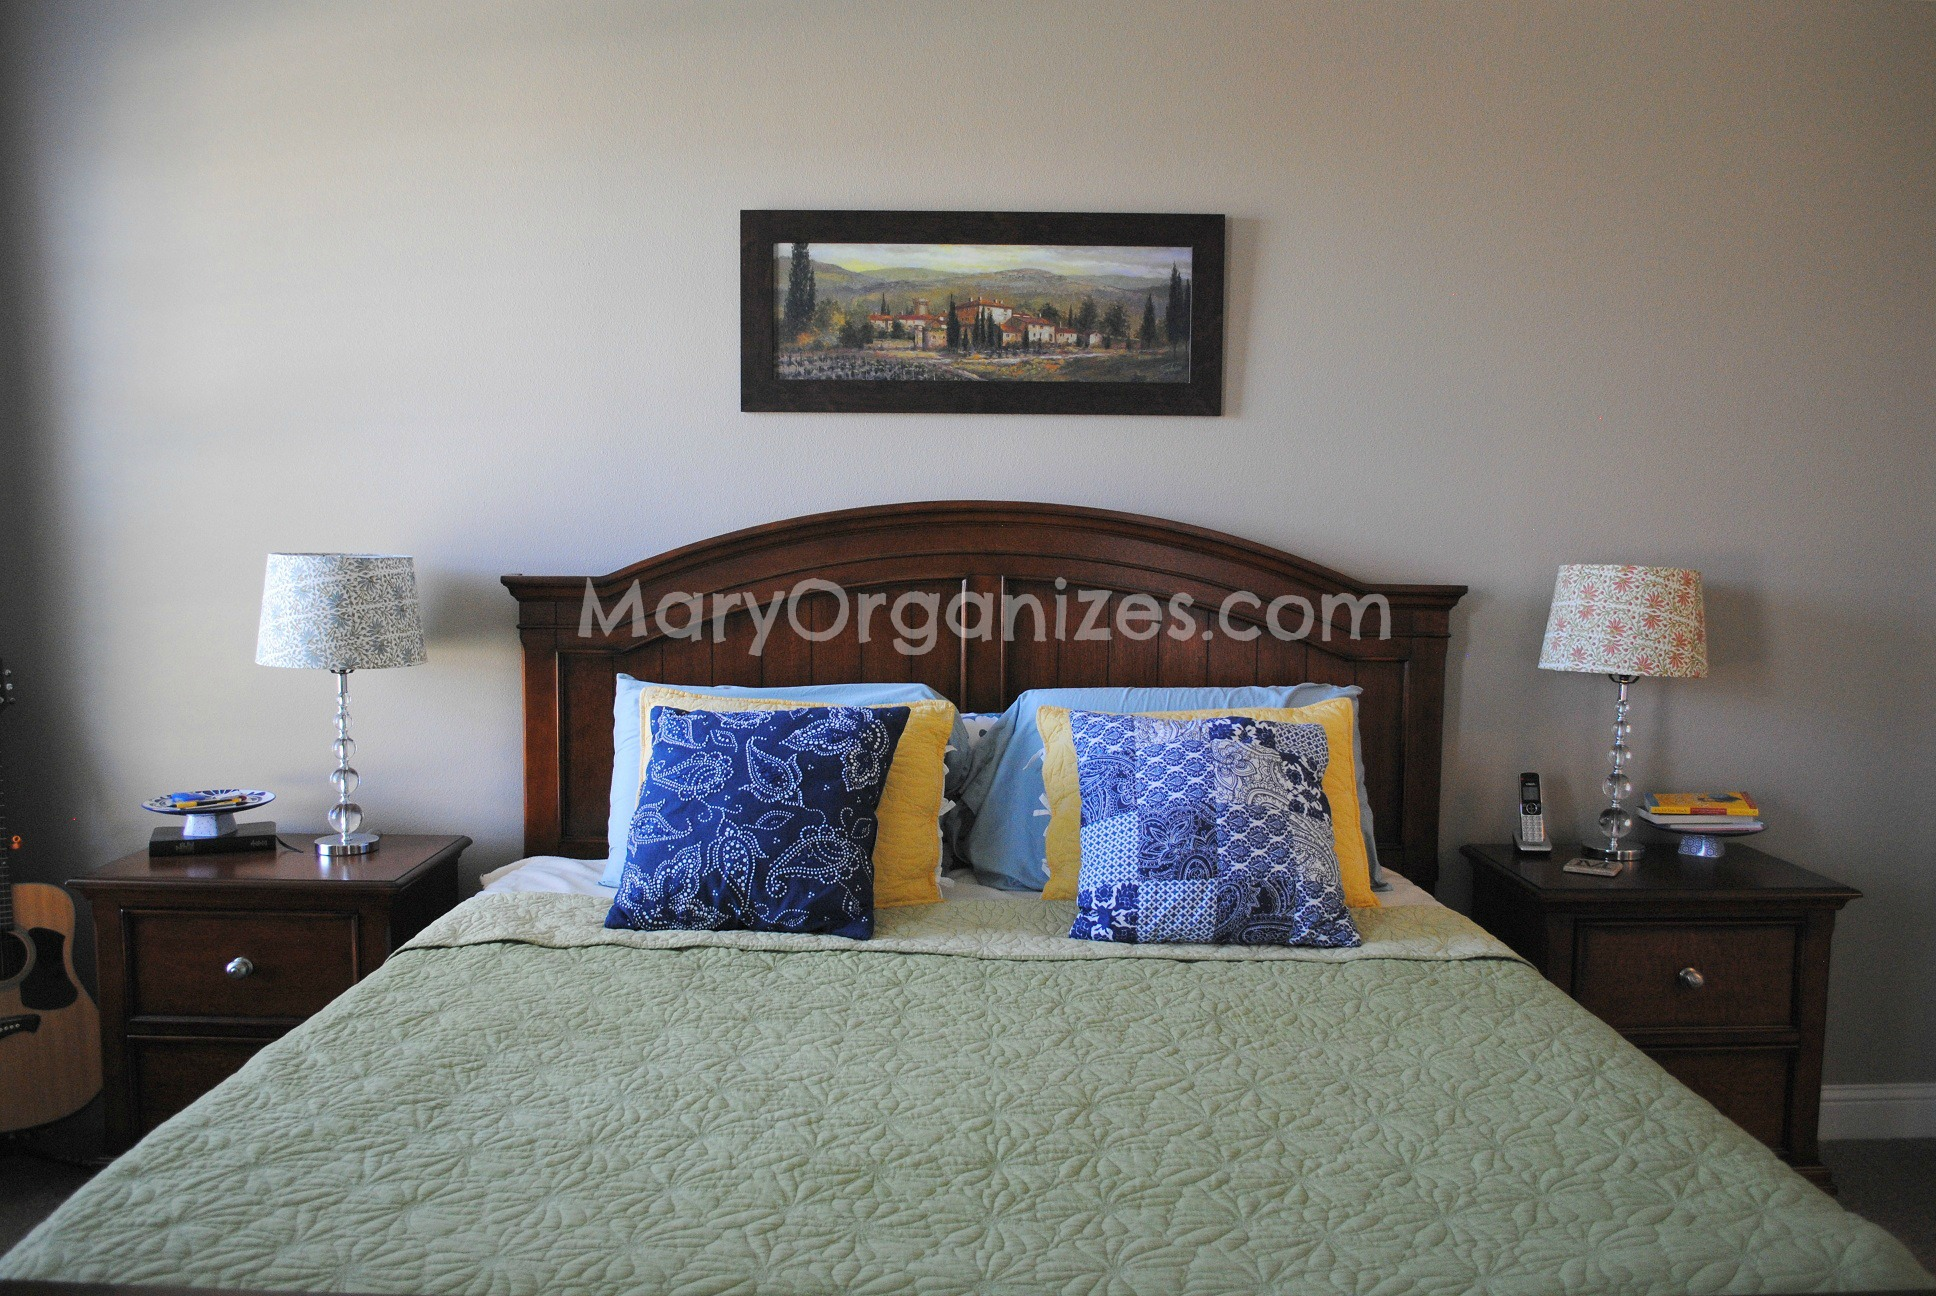 Mary Organizes Home Tour - Master Bedroom (3)